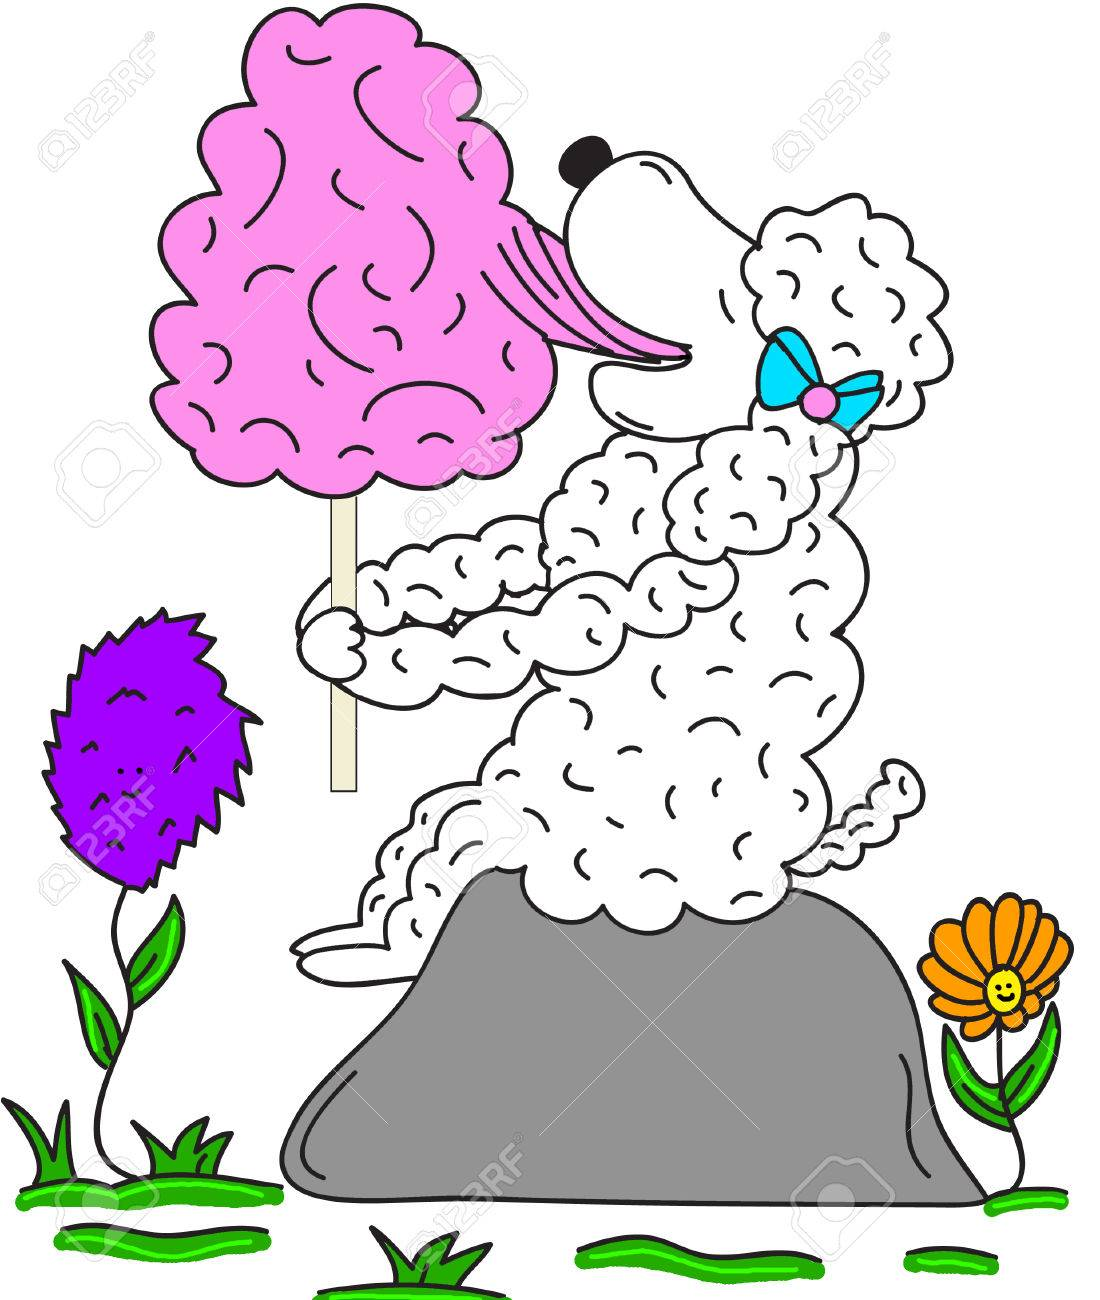 hight resolution of sheep eating cotton candy clipart cartoon illustration stock vector 39034685